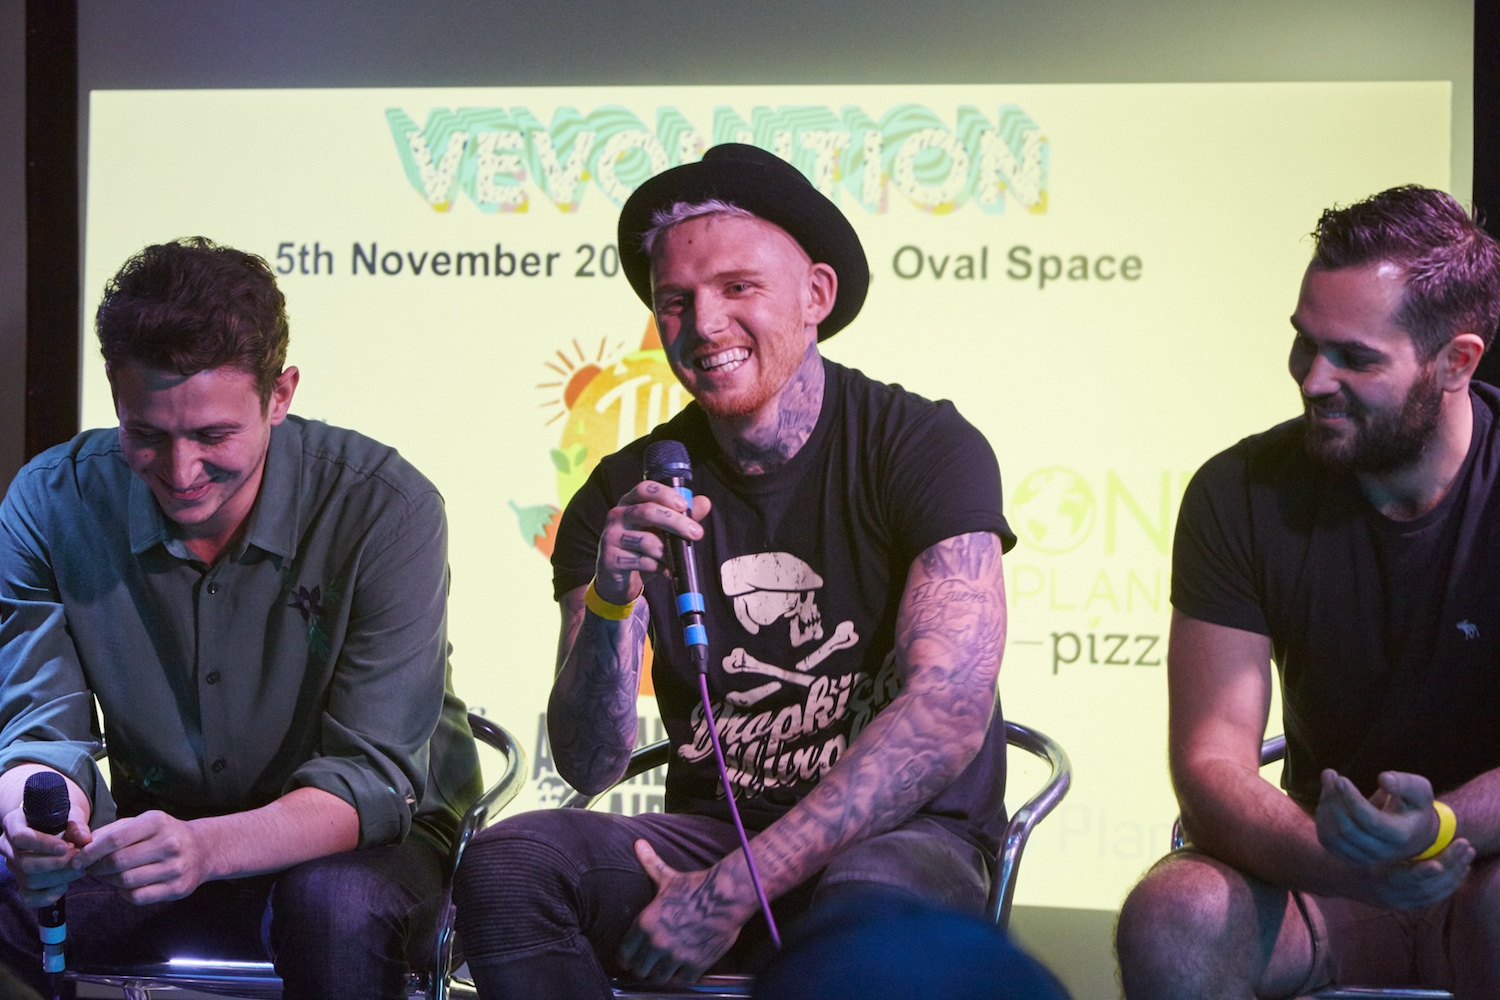 Alex Petrides (allplants), Loui Blake (No Beef) and Cem Yildiz (What The Pitta) during the Entrepreneur Panel Discussion at Vevolution Festival last year.